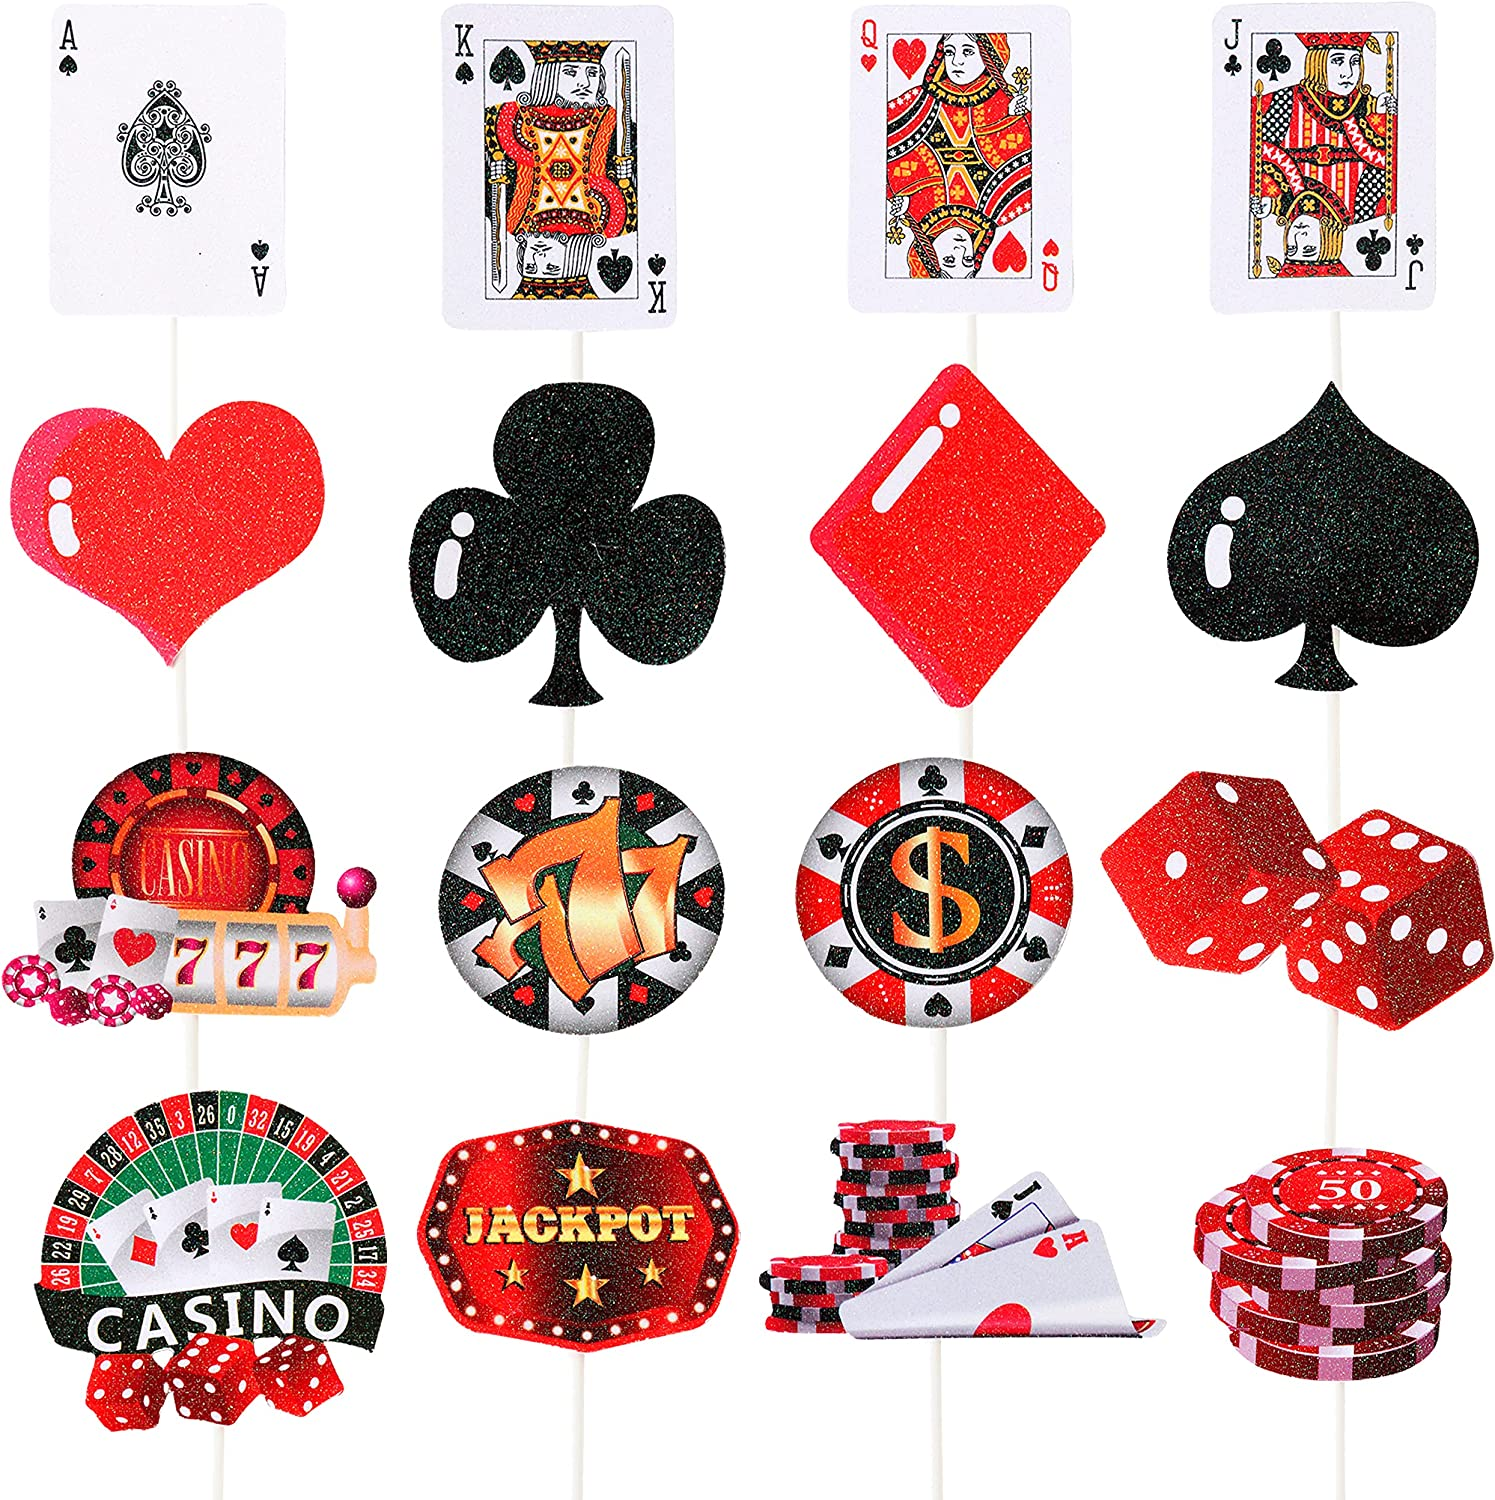 32pcs Casino Poker Party Decorations,Poker Theme Birthday Cupcake Toppers for Las Vegas Casino Night Poker Events Birthday Supplies